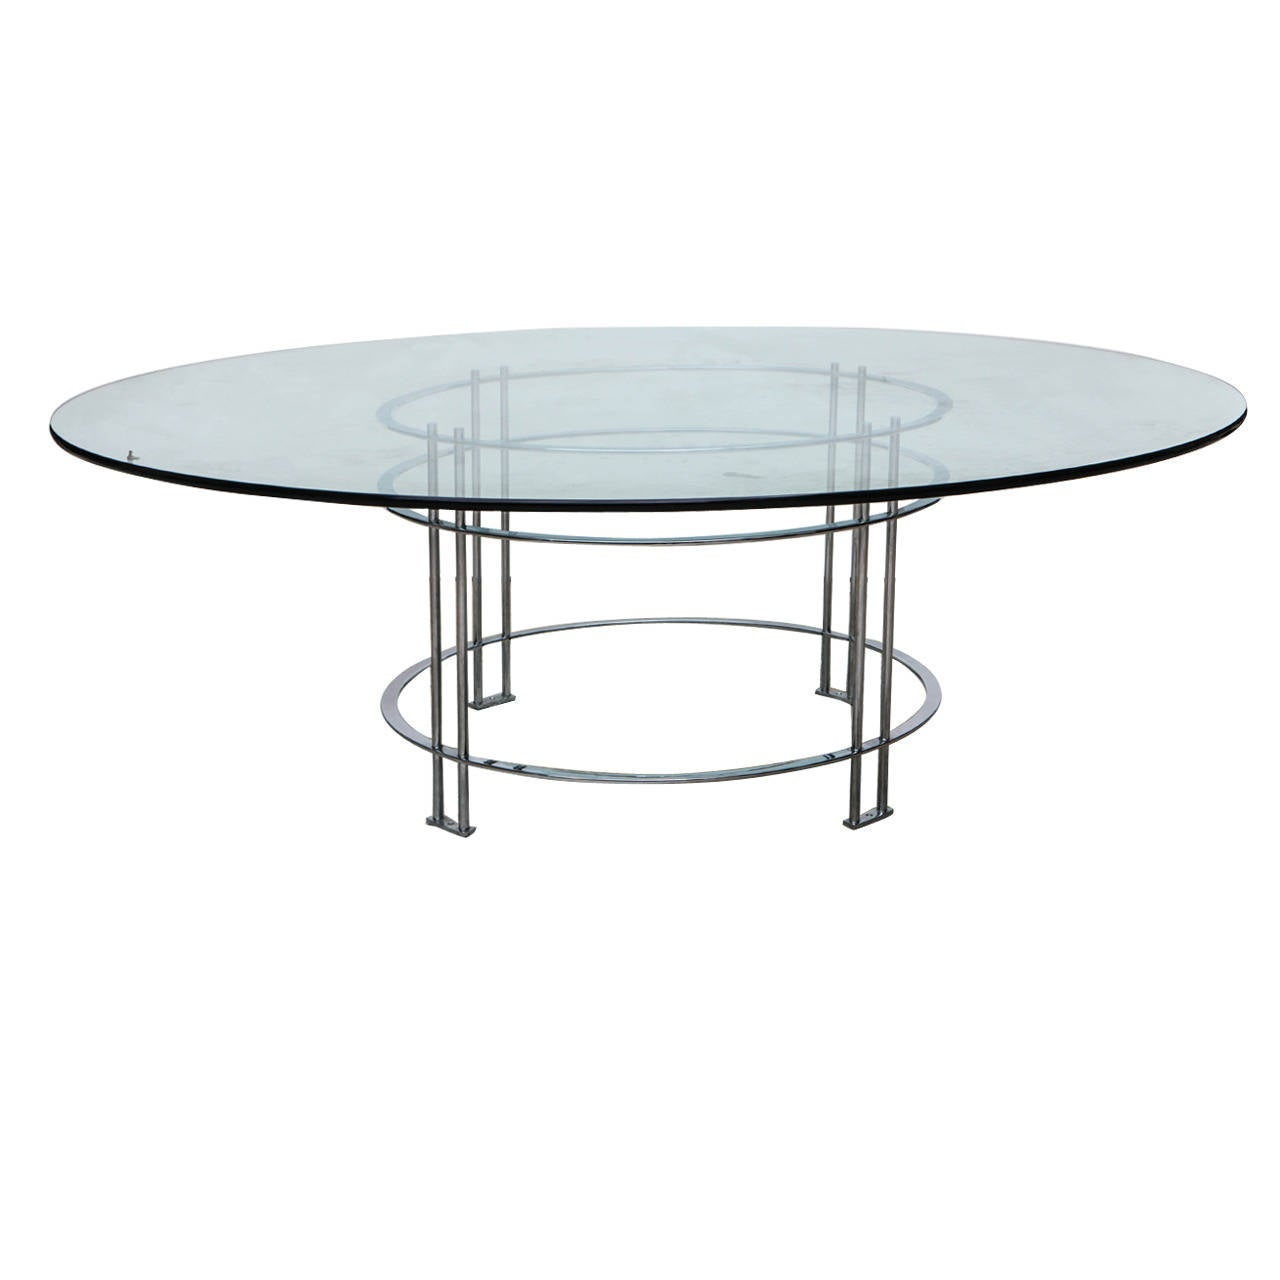 Vintage Round Dining Table With Glass Top For Sale At 1stdibs